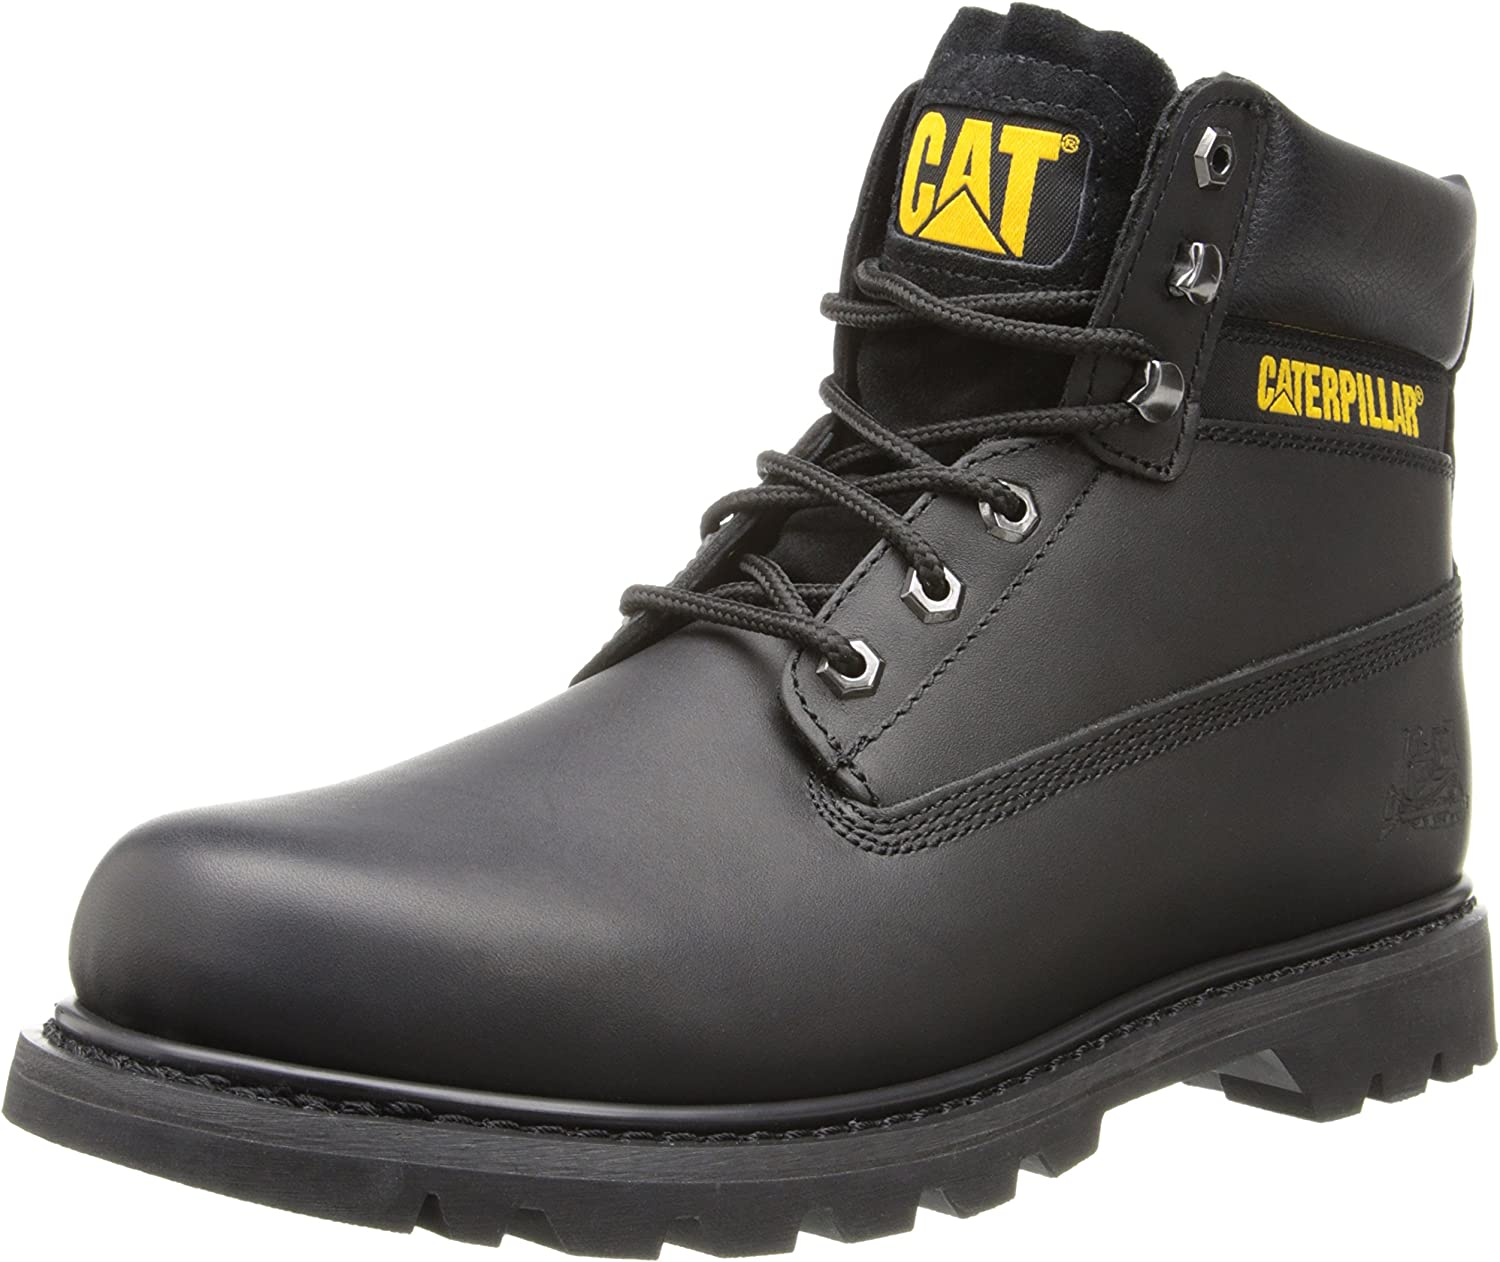 TALLA 44 EU. Cat Footwear Botas Colorado